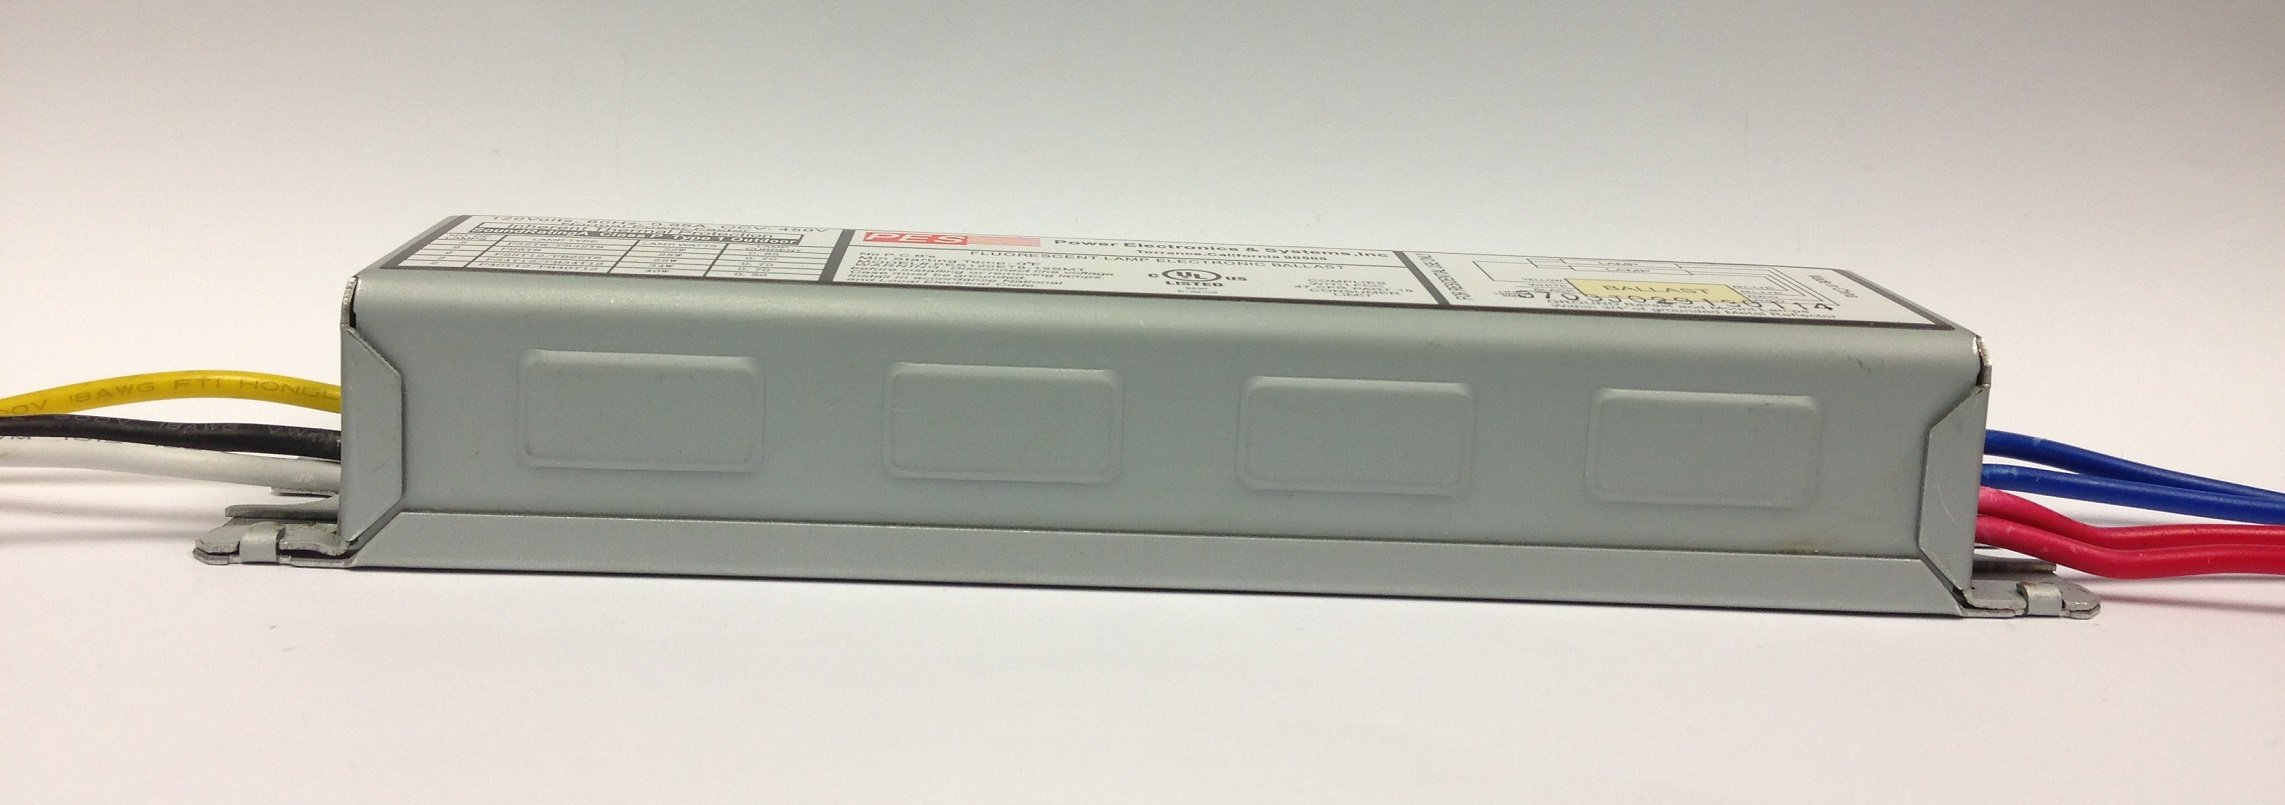 PES 2 Lamps Fluorescent Electronic Ballast, 120V, # PES120ET8-12SMT by Power Electronics & Systems (Image #2)